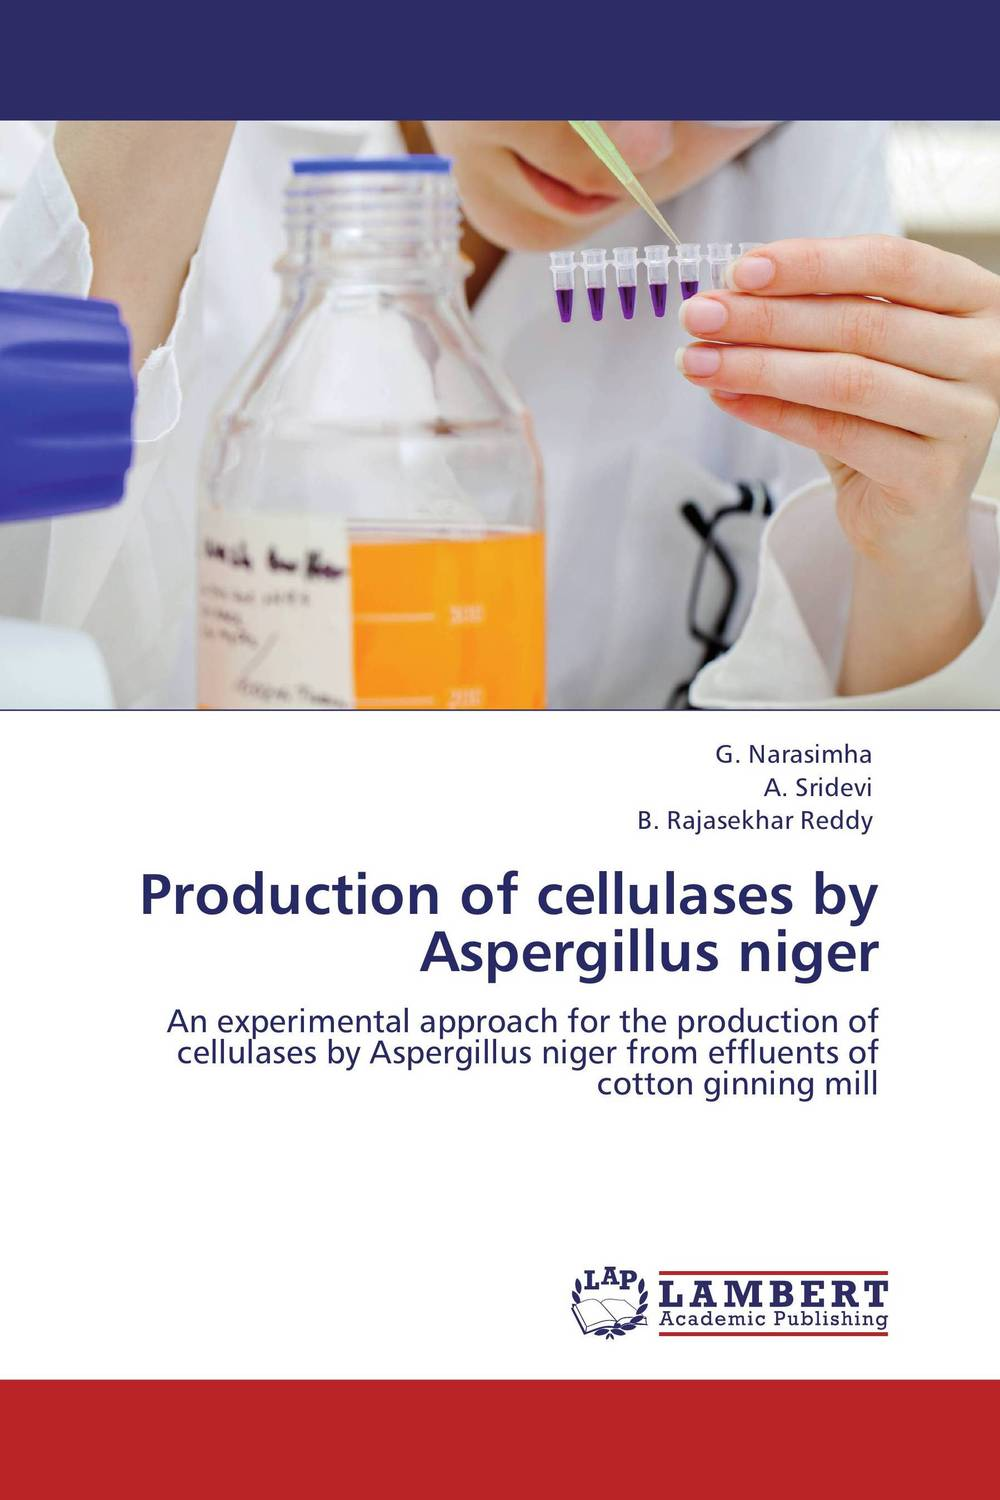 Production of cellulases by Aspergillus niger augmented cellulase production by mutagenesis of trichoderma viride